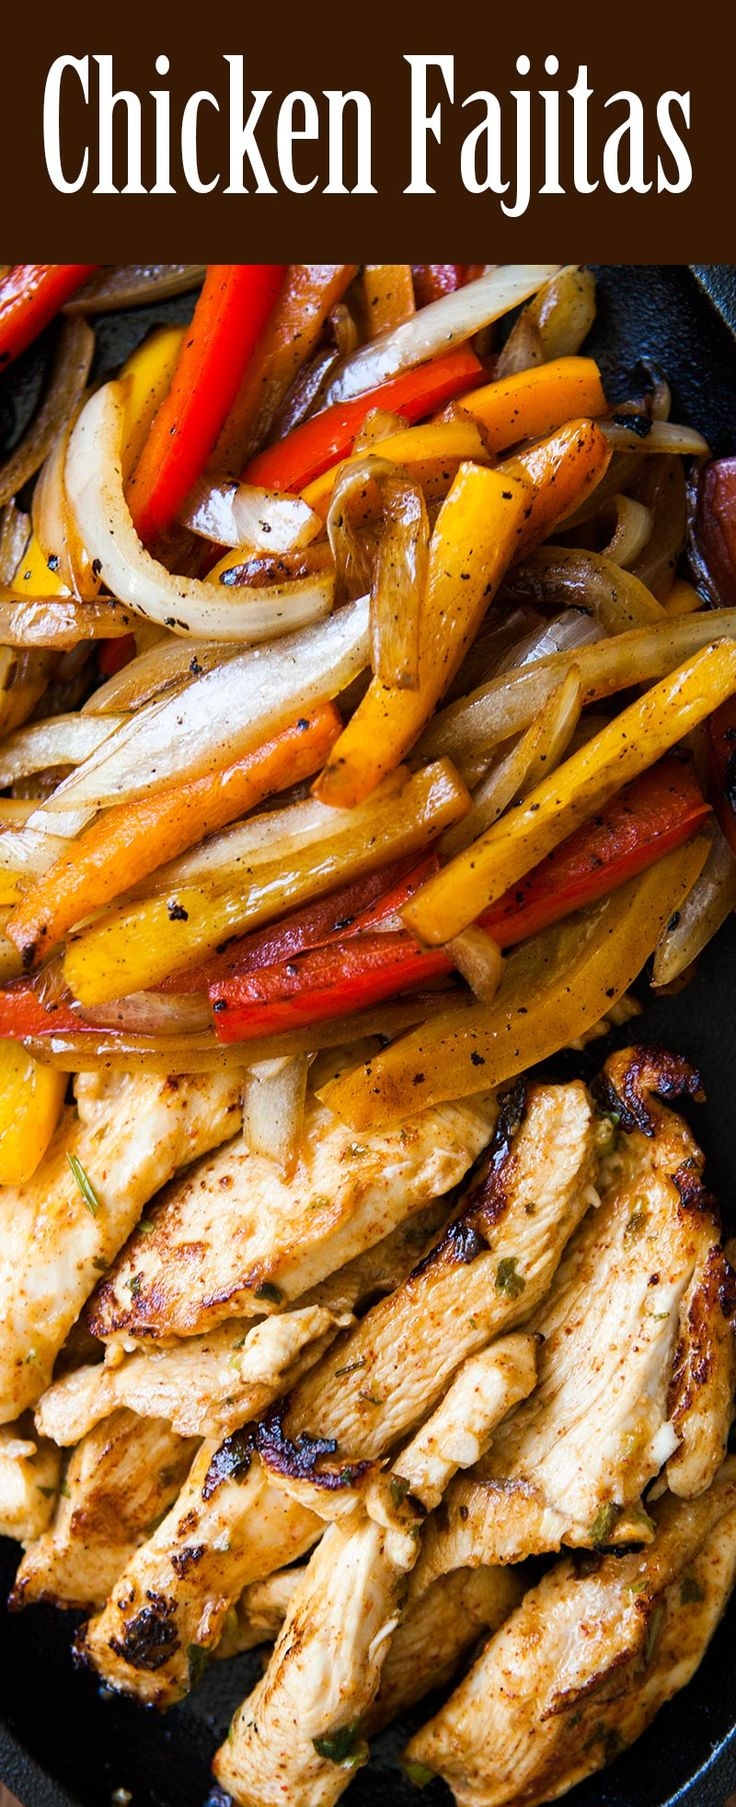 The Best Chicken Fajitas Marinated Chicken Breasts Seared Quickly And Served With Seared Onions And